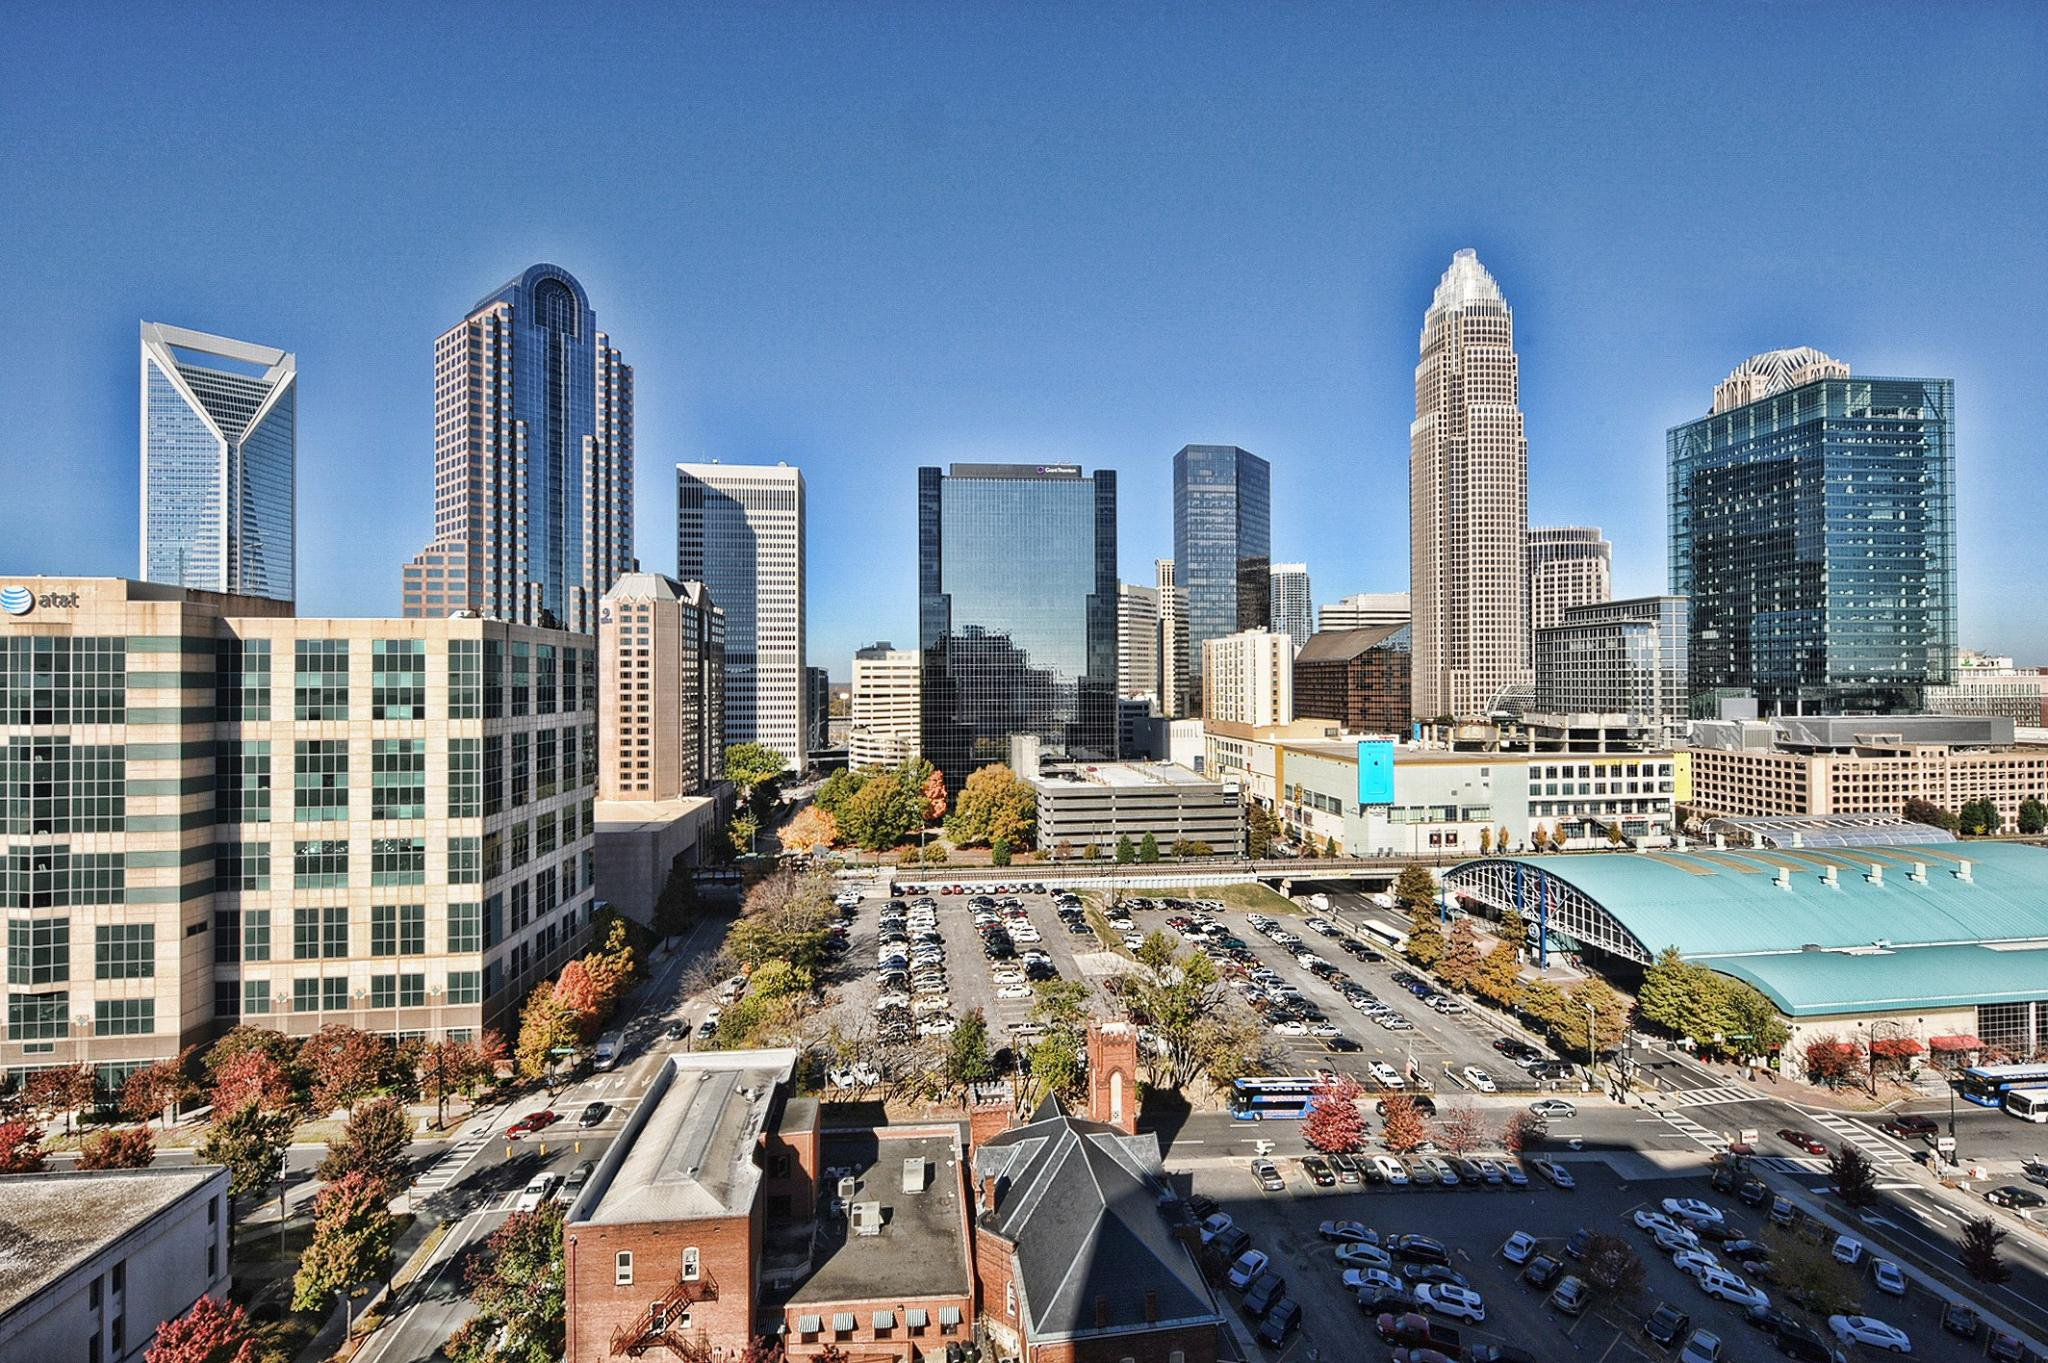 Things To Do In Charlotte Nc Apartment Construction In Charlotte Nc Continues To Show